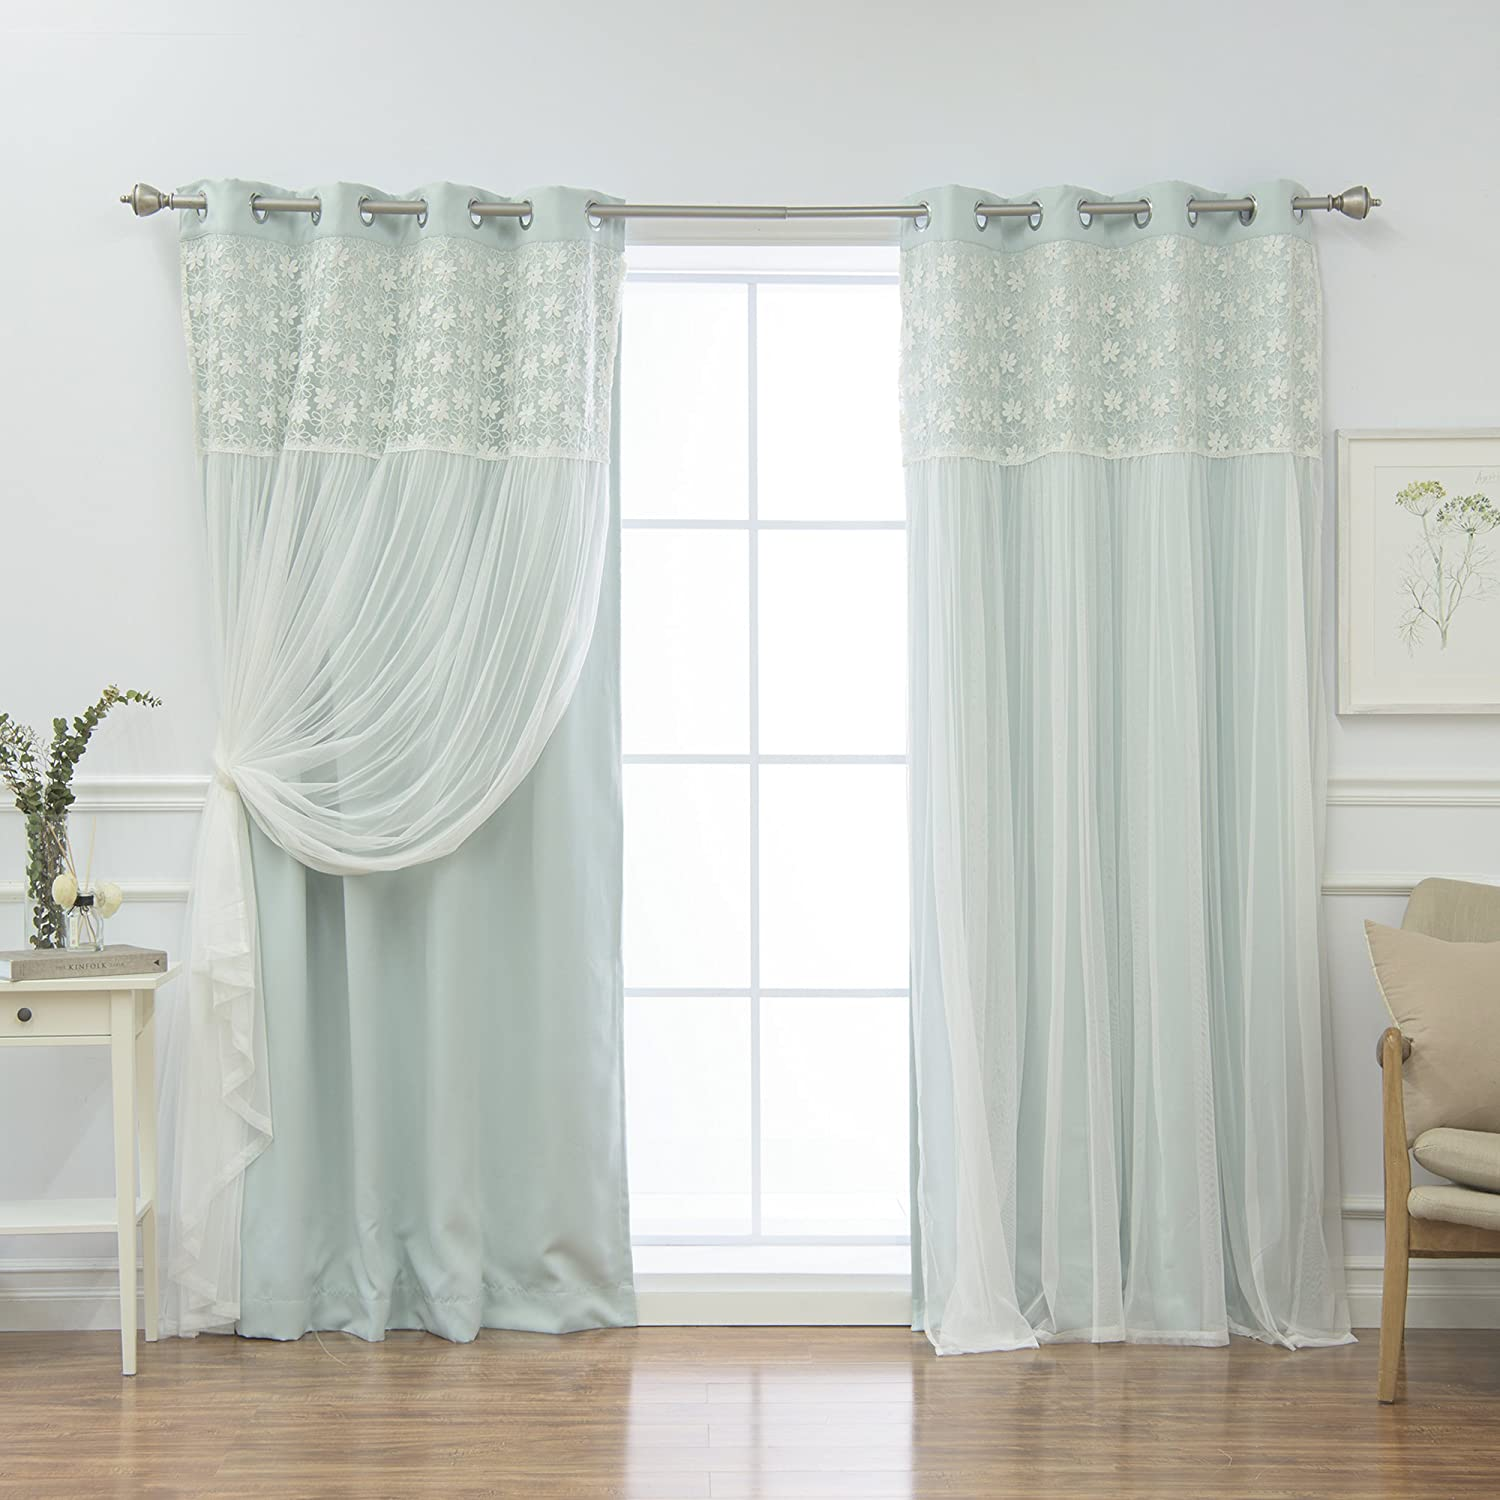 Best Home Fashion Floral Lace Overlay Thermal Insulated Blackout Curtains - Stainless Steel Nickel Grommet Top - Mint